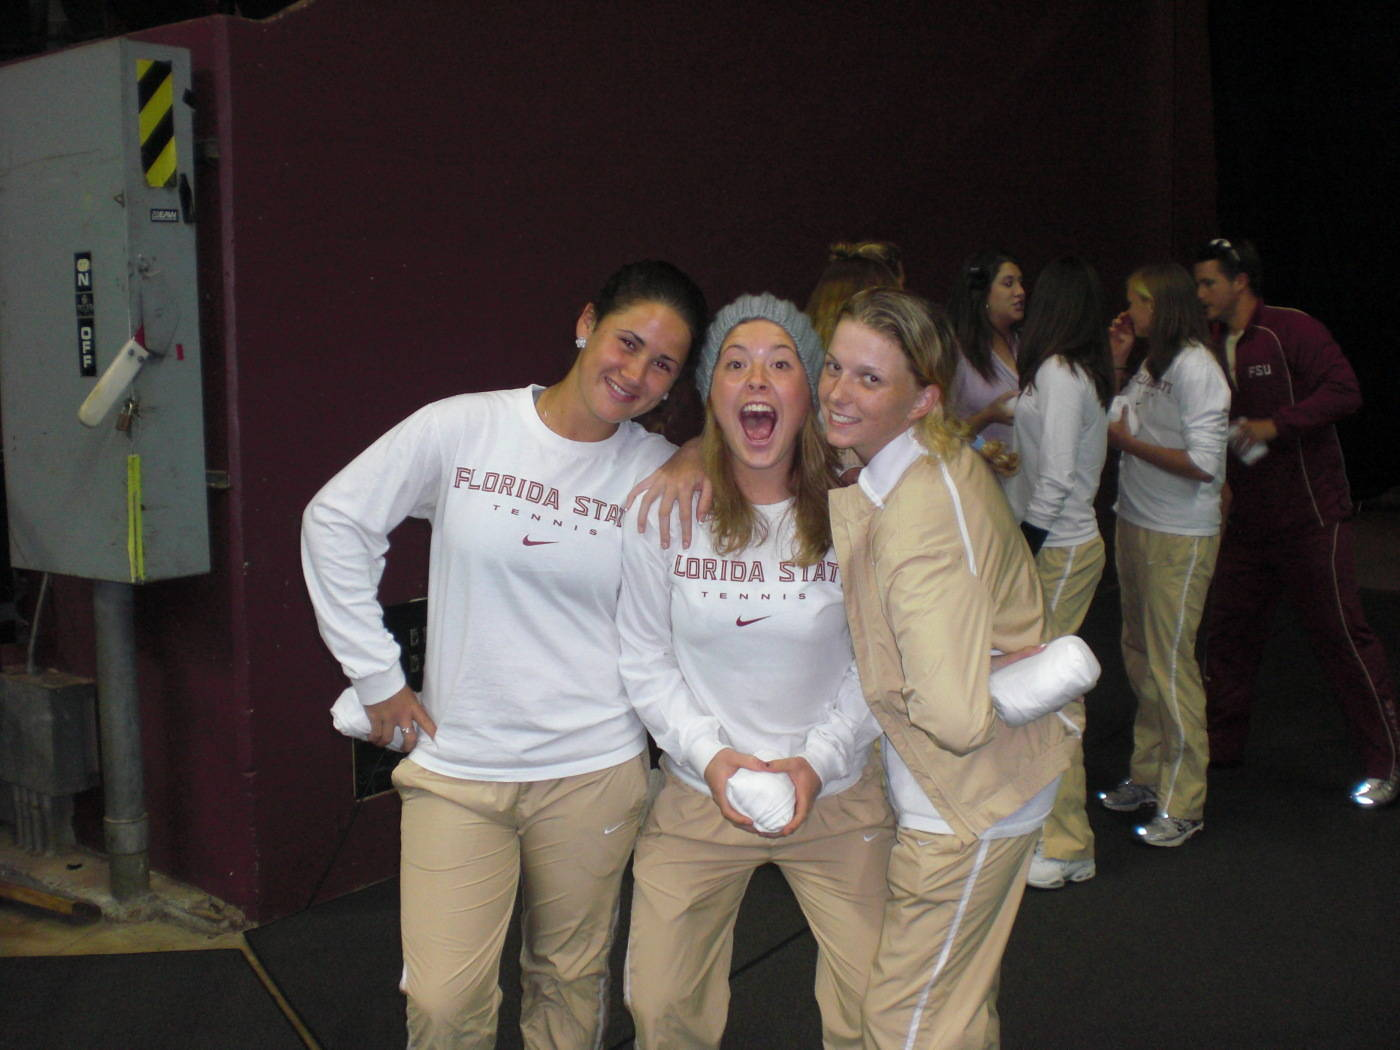 The women's tennis team was recognized at the FSU women's basketball game.